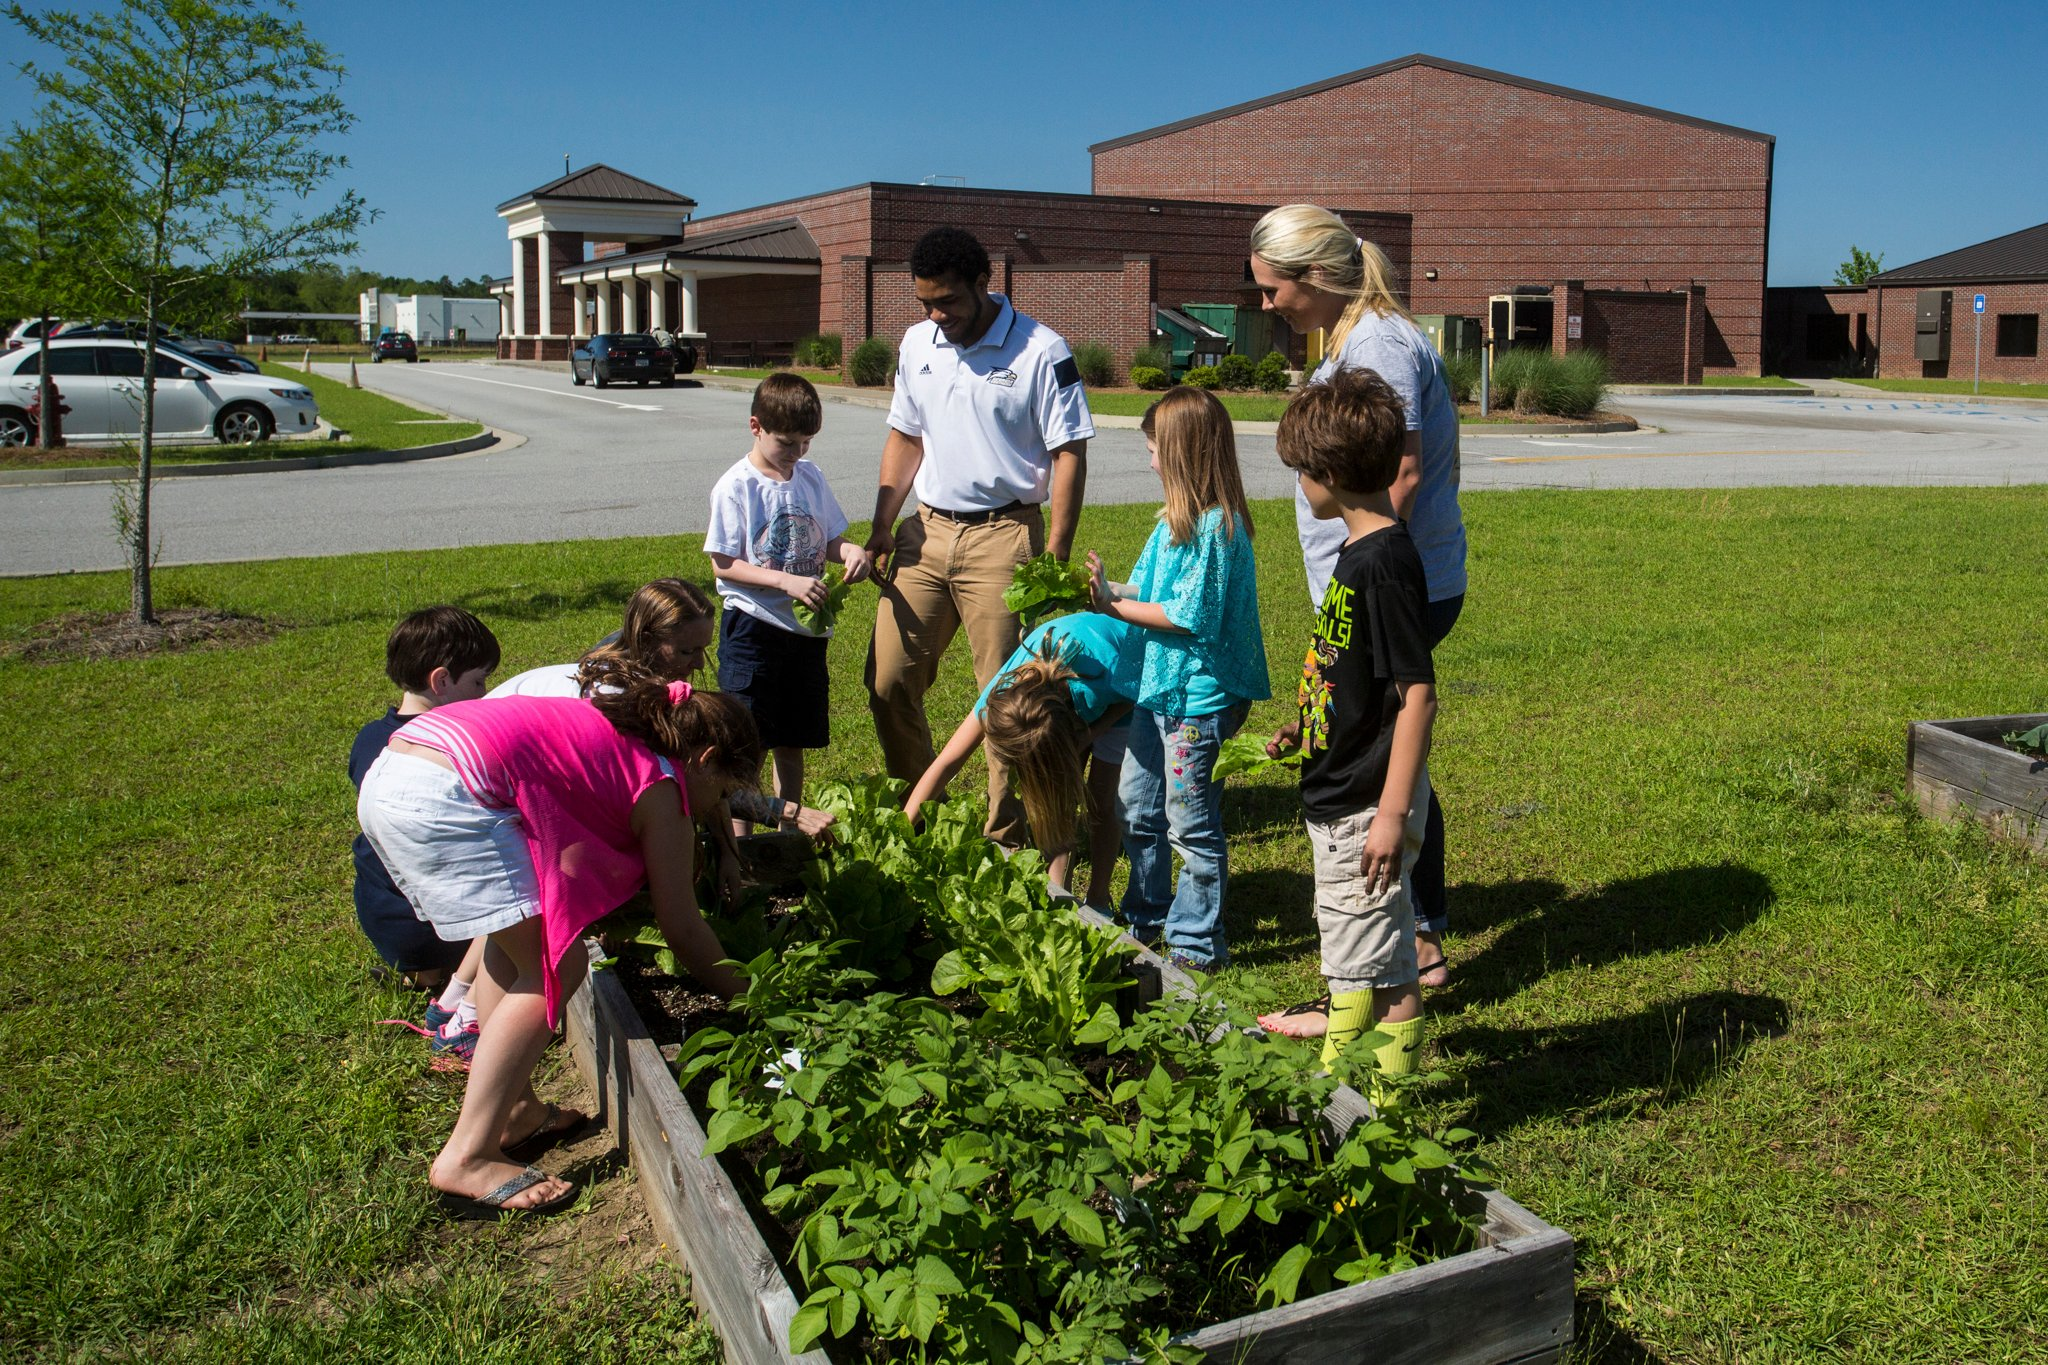 Georgia Southern University offers student sustainability projects